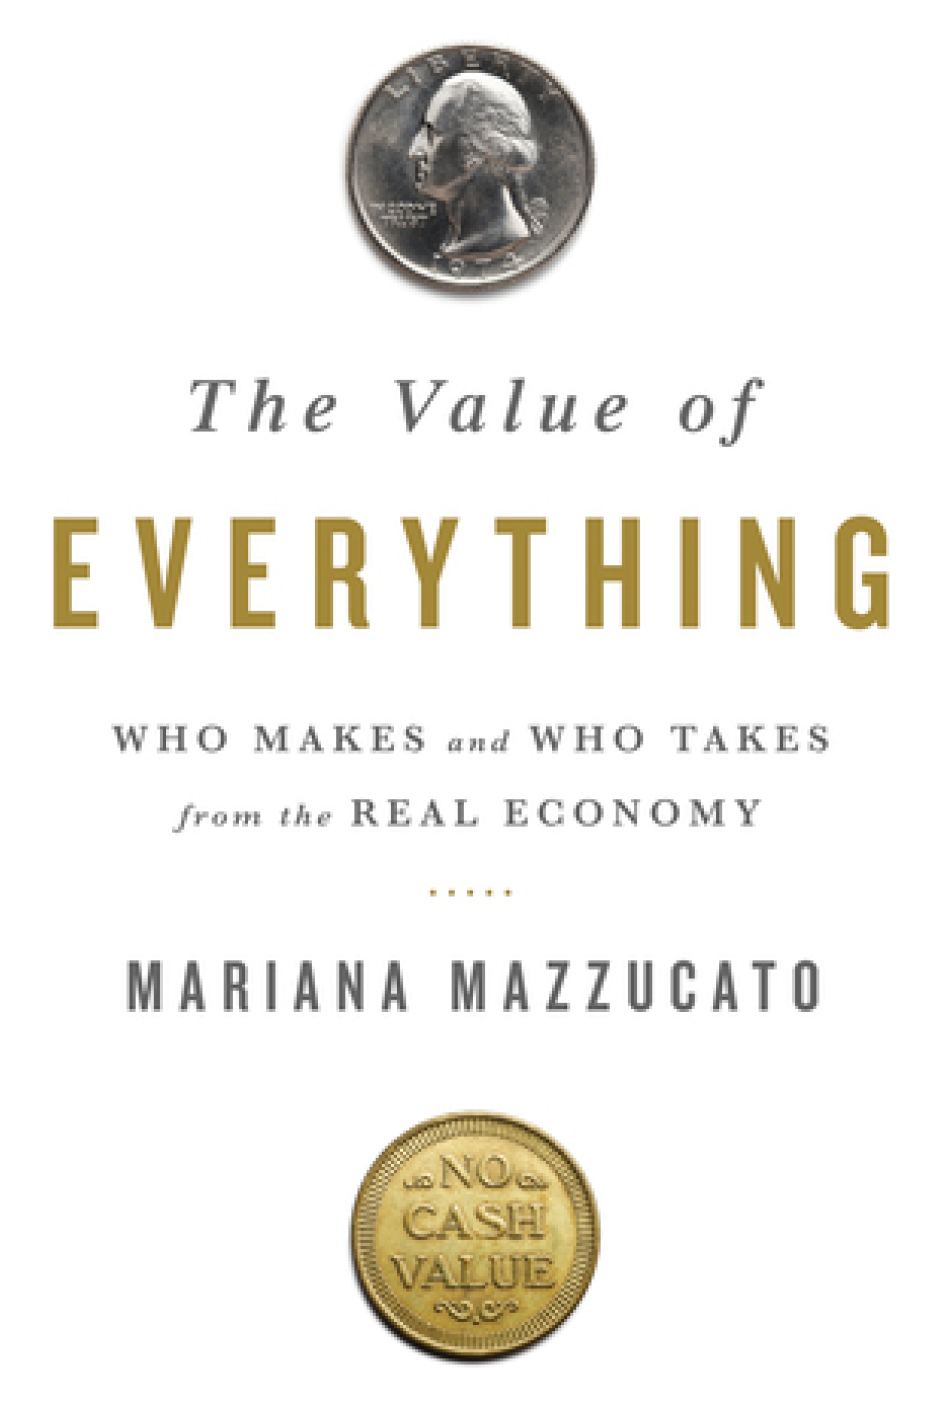 "The Value of Everything   ,   Mariana Mazzucato    ""  Modern economies reward activities that extract value rather than create it. This must change to insure a capitalism that works for us all.    In this scathing indictment of our current global financial system, The Value of Everything scrutinizes the way in which economic value has been determined and reveals how the difference between value creation and value extraction has become increasingly blurry. Mariana Mazzucato argues that this blurriness allowed certain actors in the economy to portray themselves as value creators, while in reality they were just moving existing value around or, even worse, destroying it. The book uses case studies–from Silicon Valley to the financial sector to big pharma–to show how the foggy notions of value create confusion between rents and profits, a difference that distorts the measurements of growth and GDP.    The lesson here is urgent and sobering: to rescue our economy from the next, inevitable crisis and to foster long term economic growth, we will need to rethink capitalism, rethink the role of public policy and the importance of the public sector, and redefine how we measure value in our society ""   Karen Clements , Deputy Managing Director"